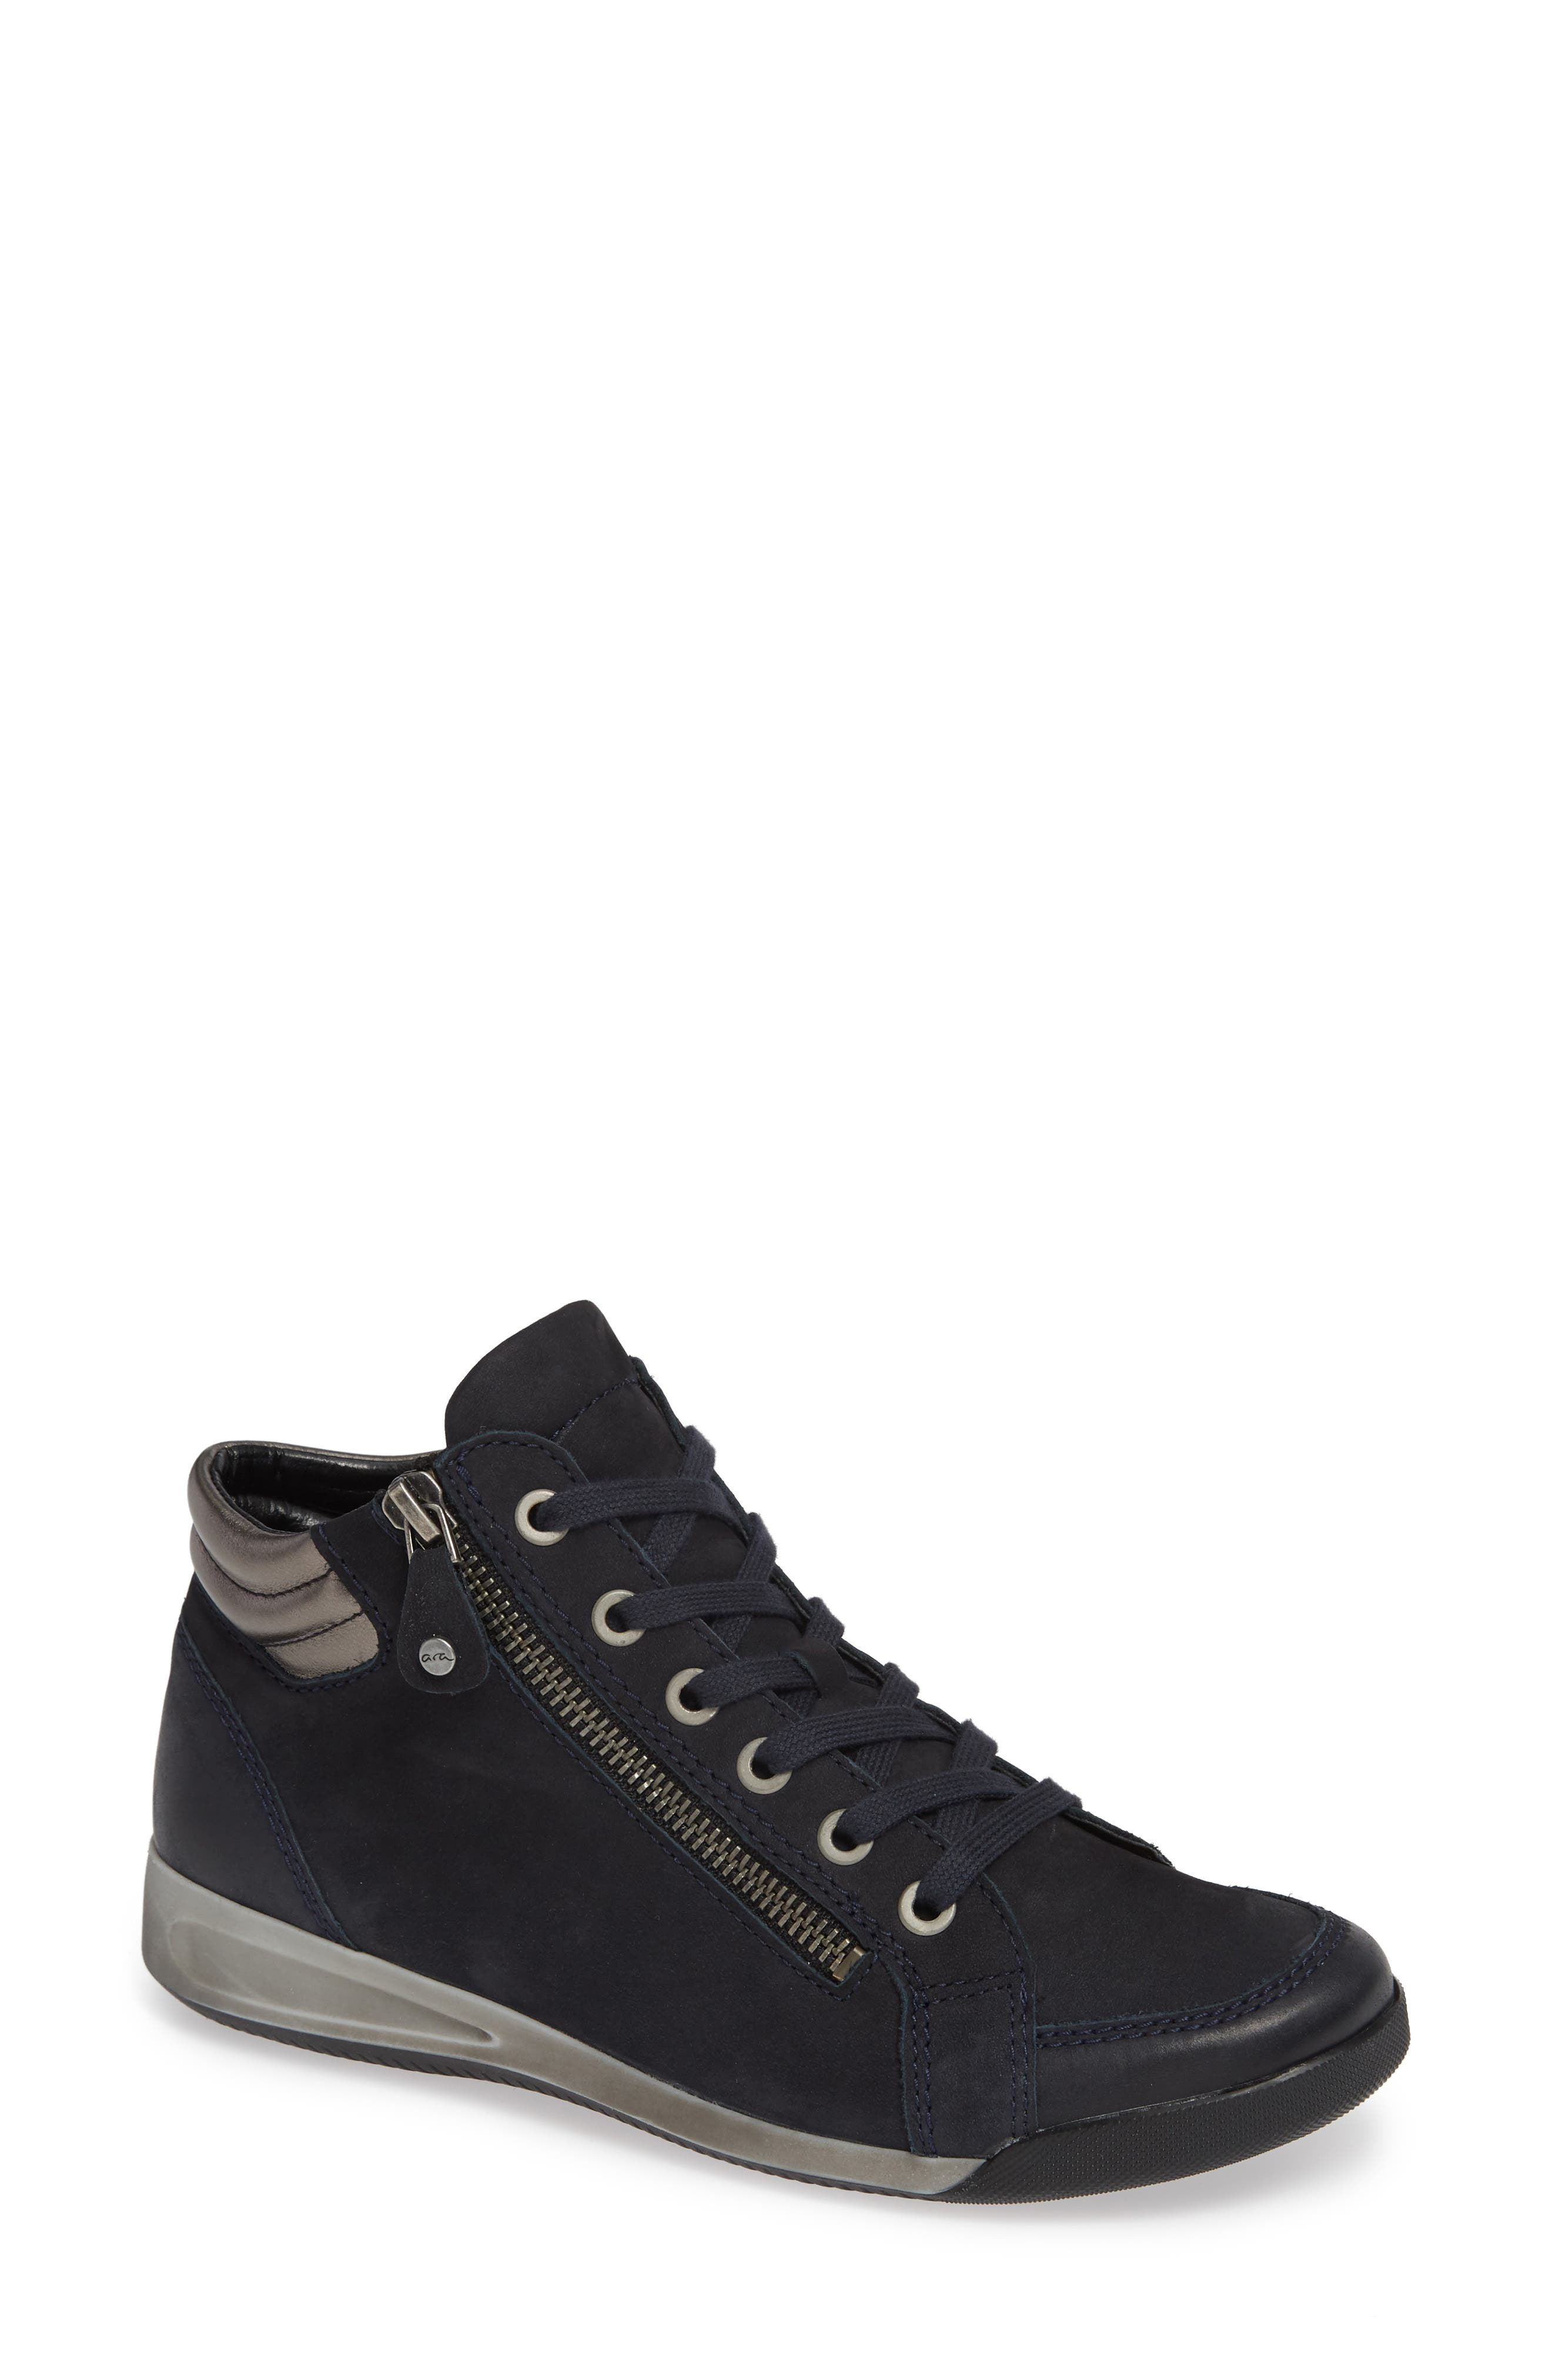 Rylee High Top Sneaker,                             Main thumbnail 1, color,                             BLUE NUBUCK LEATHER